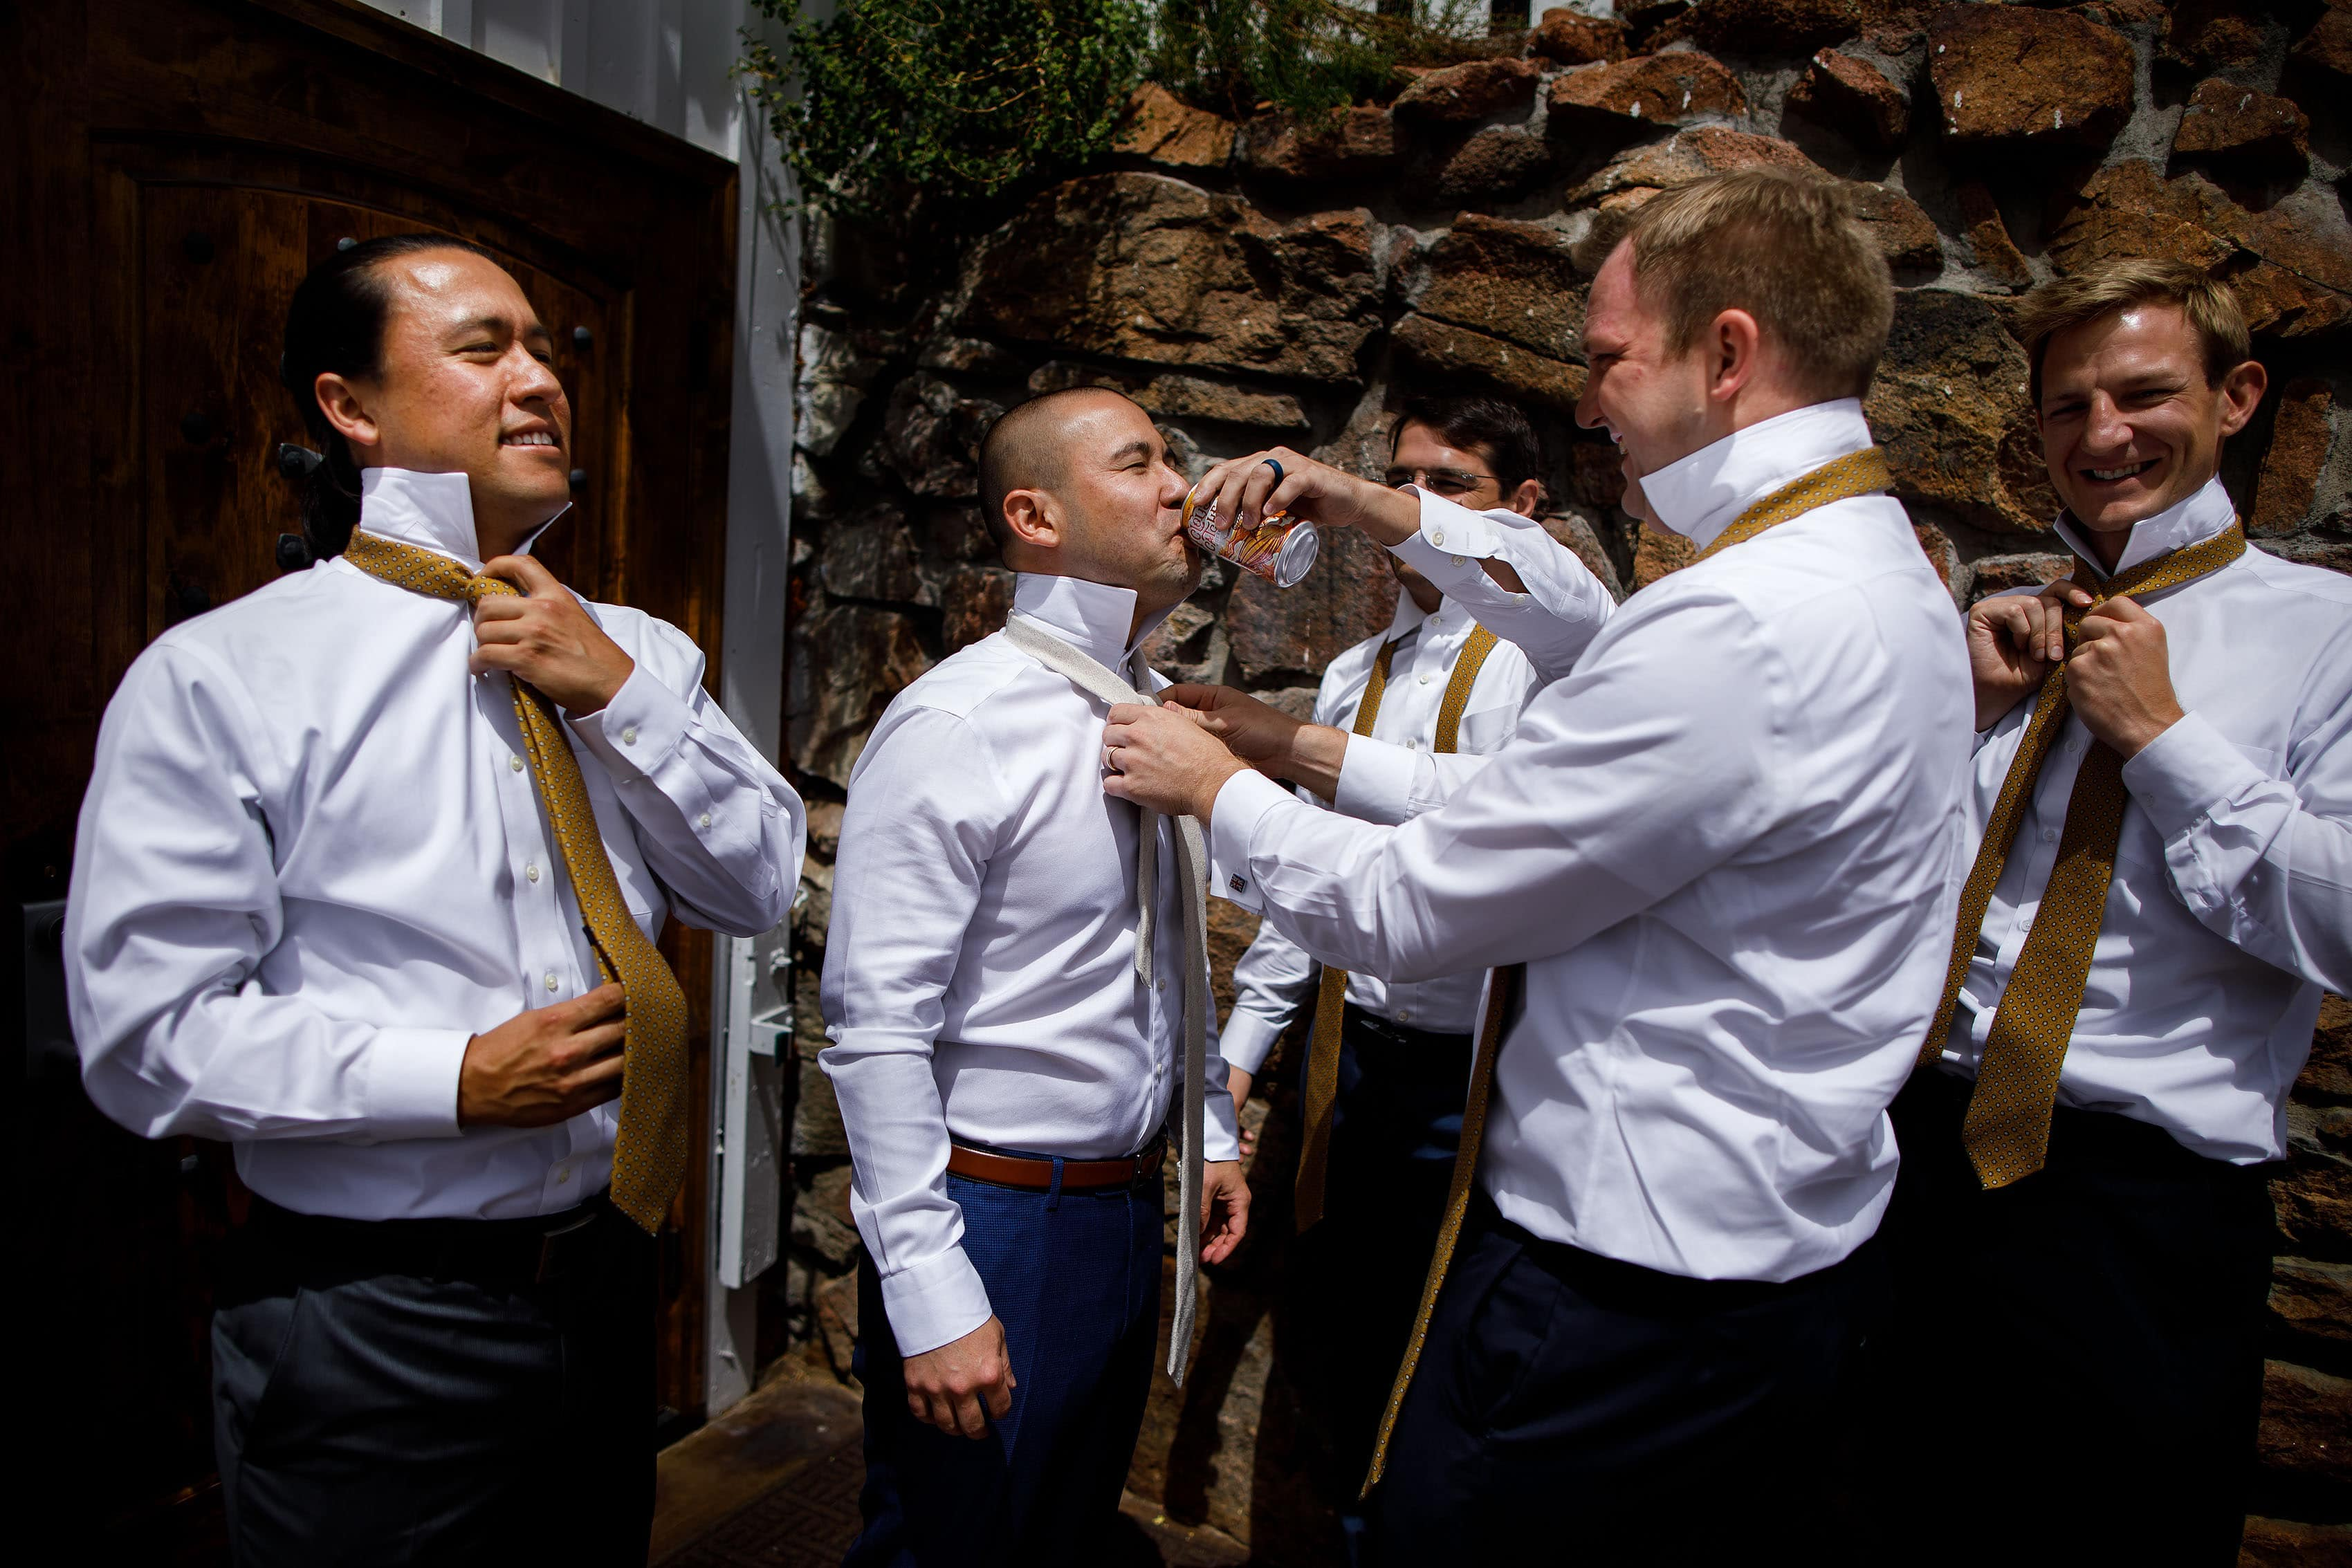 Groomsmen help the groom tie his tie and drink a beer at Deer Creek Valley Ranch